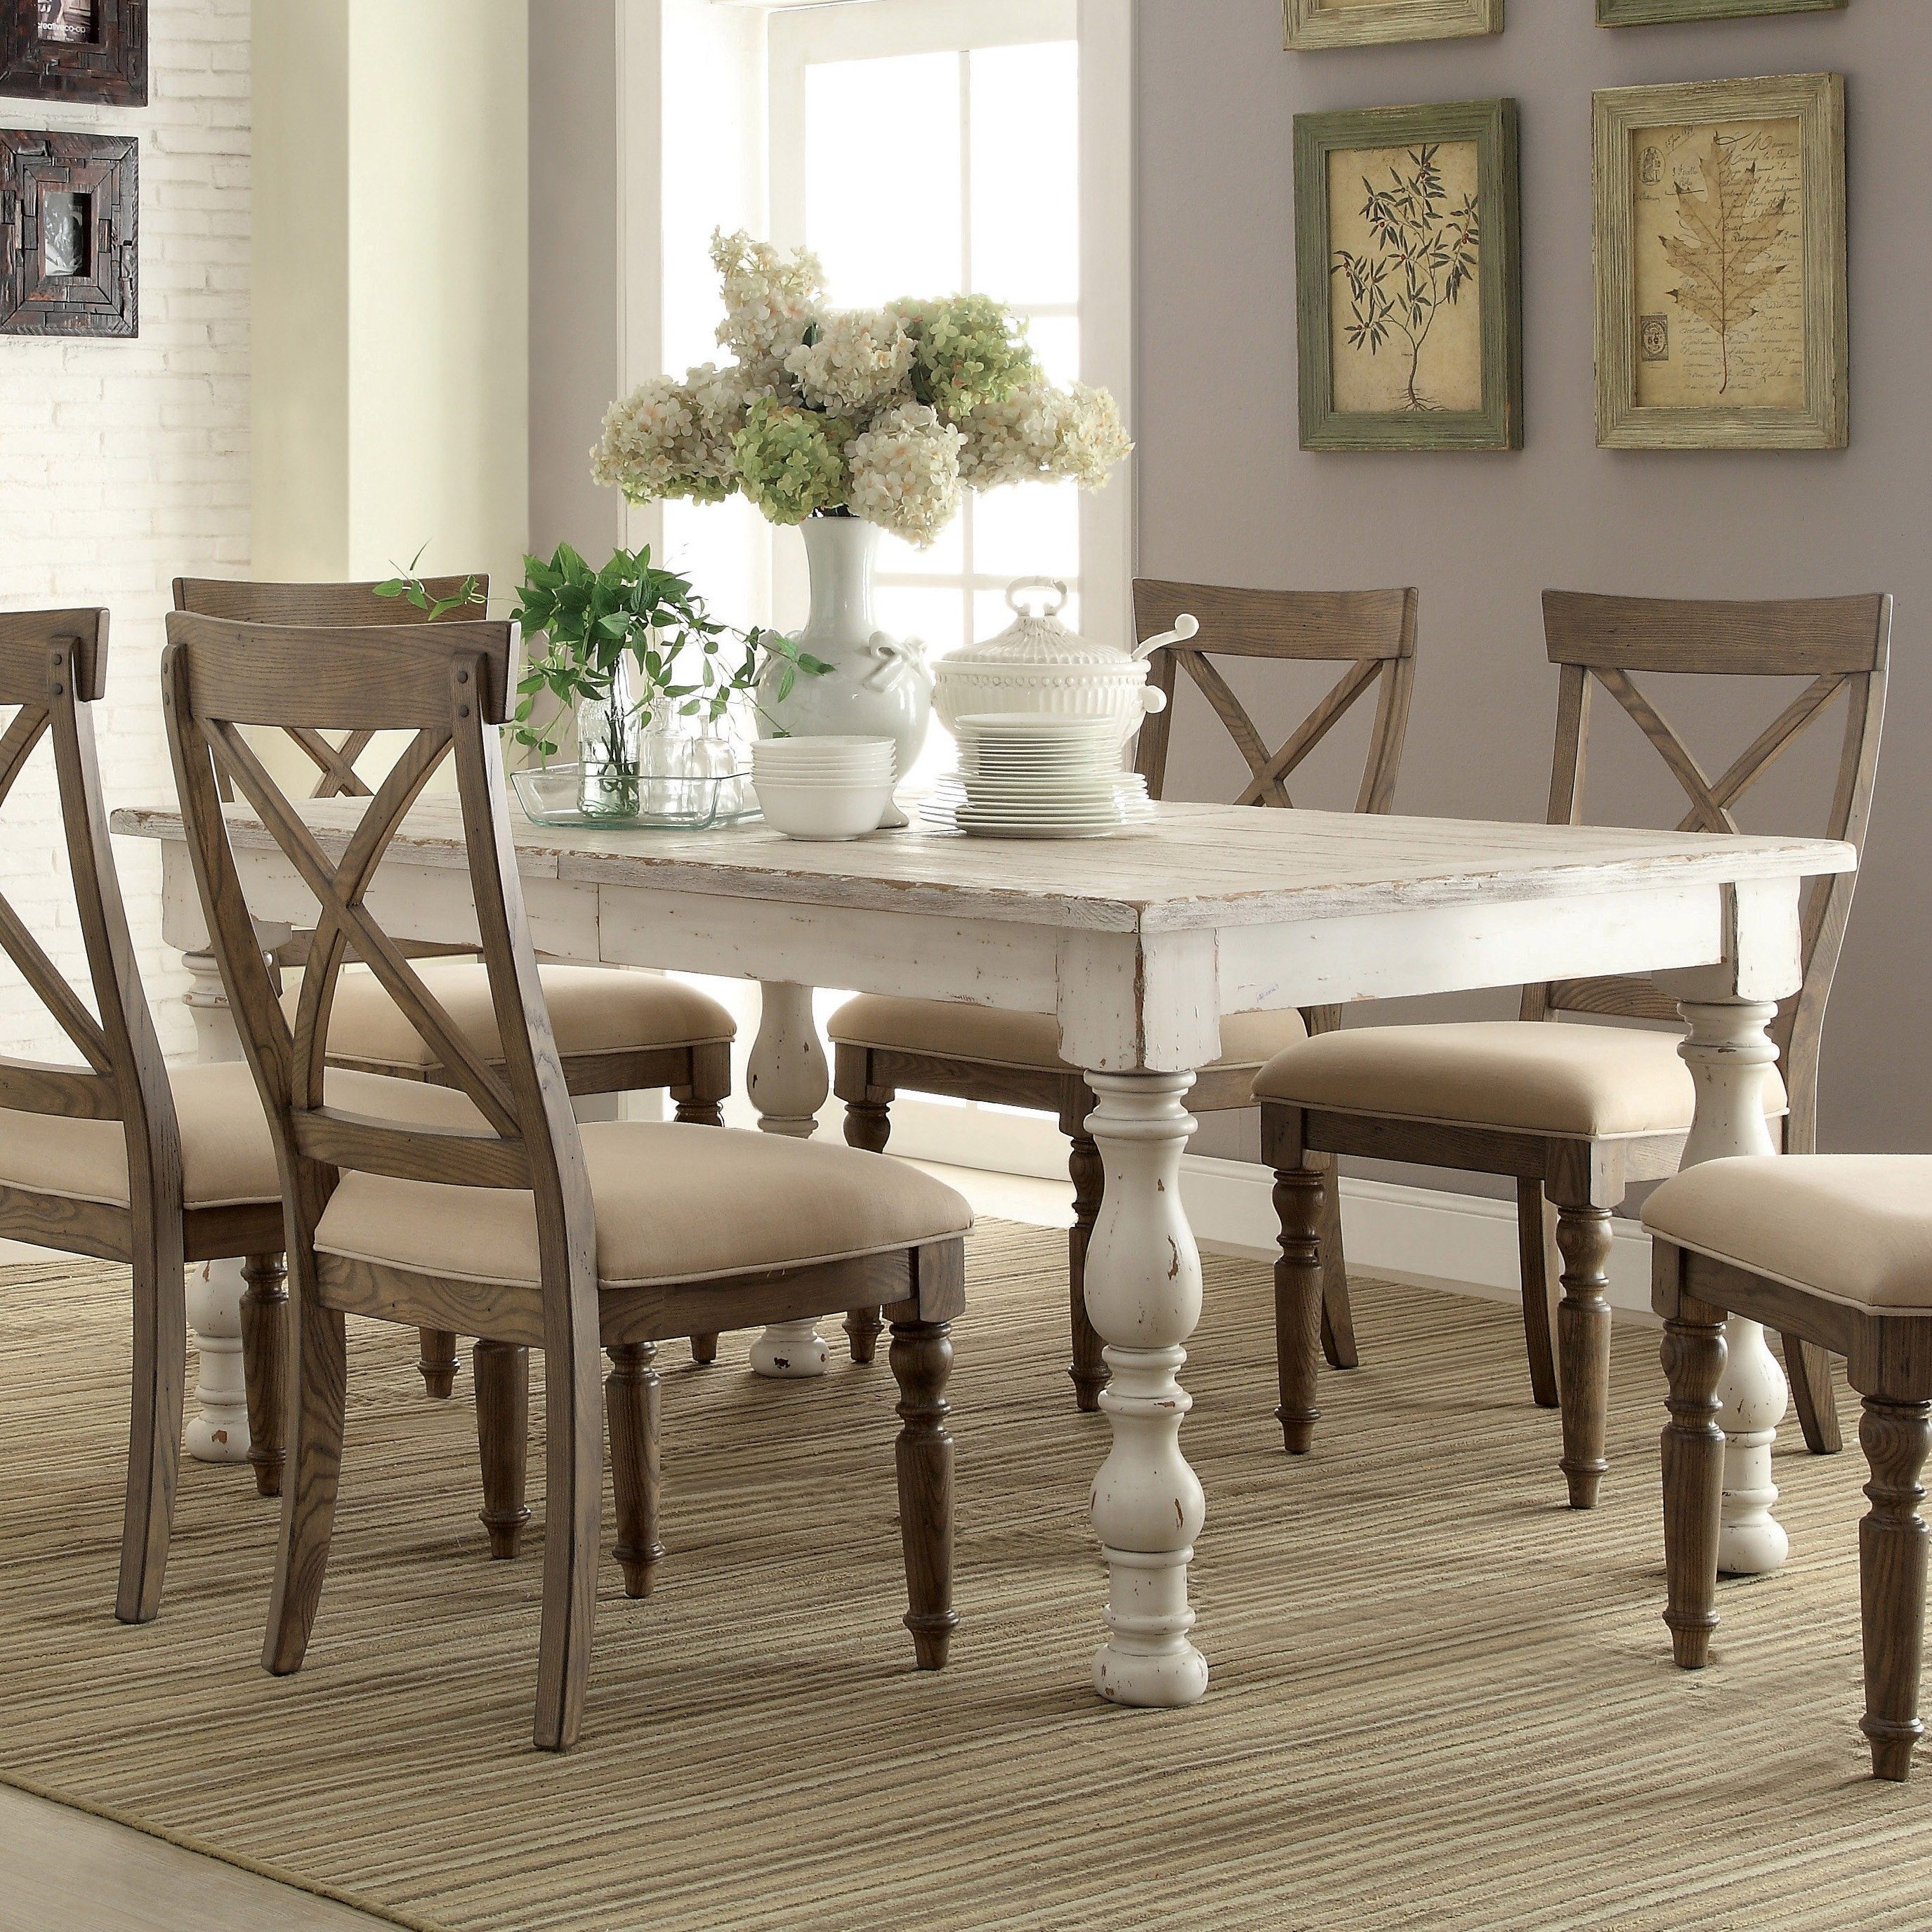 Aberdeen Wood Rectangular Dining Table and Chairs in Weathered Worn